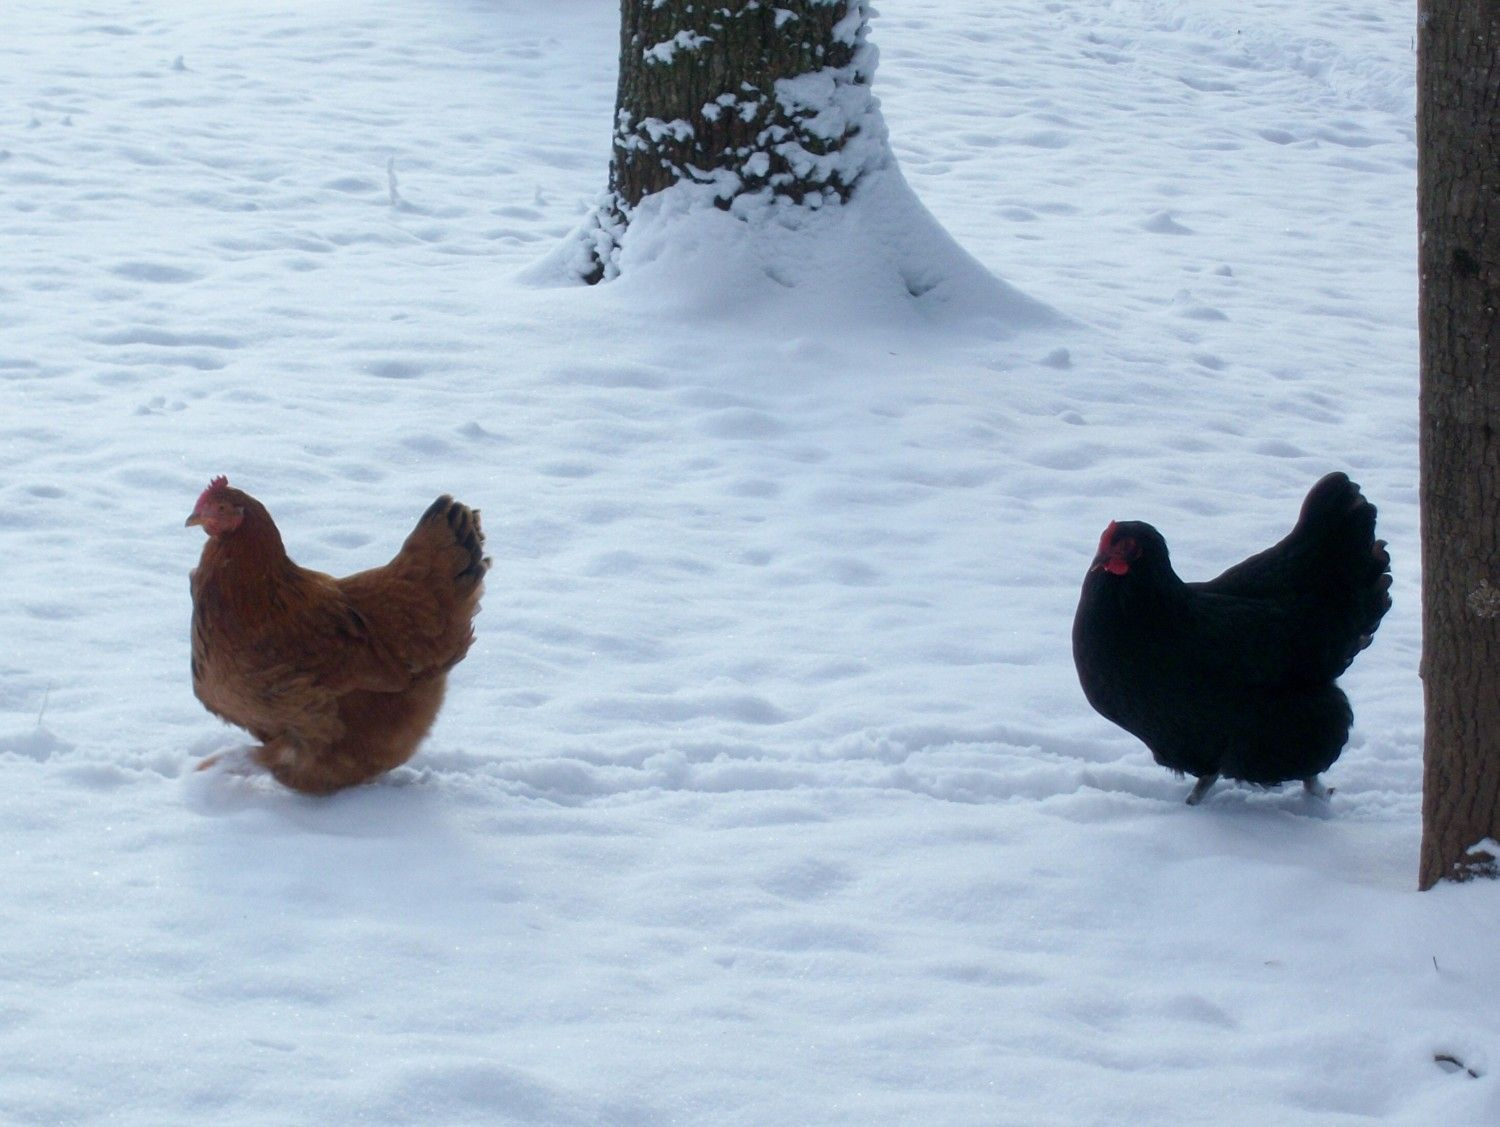 during the winter do you keep food and water inside the coop and